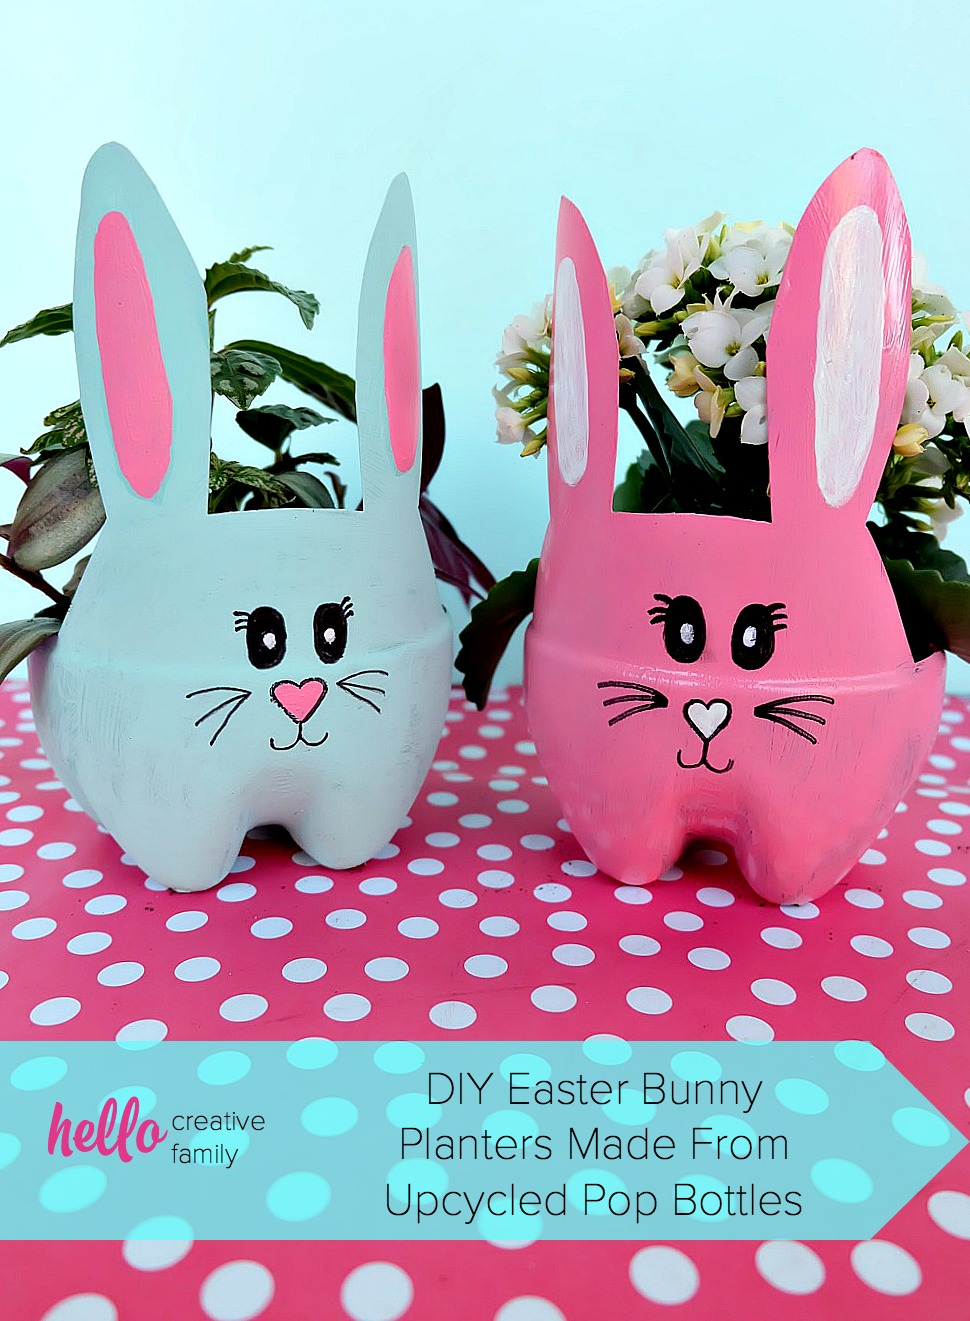 Diy easter bunny planters made from upcycled pop bottles bright and colorful they are a fun craft for a table centerpiece front porch or handmade easter gift idea negle Gallery